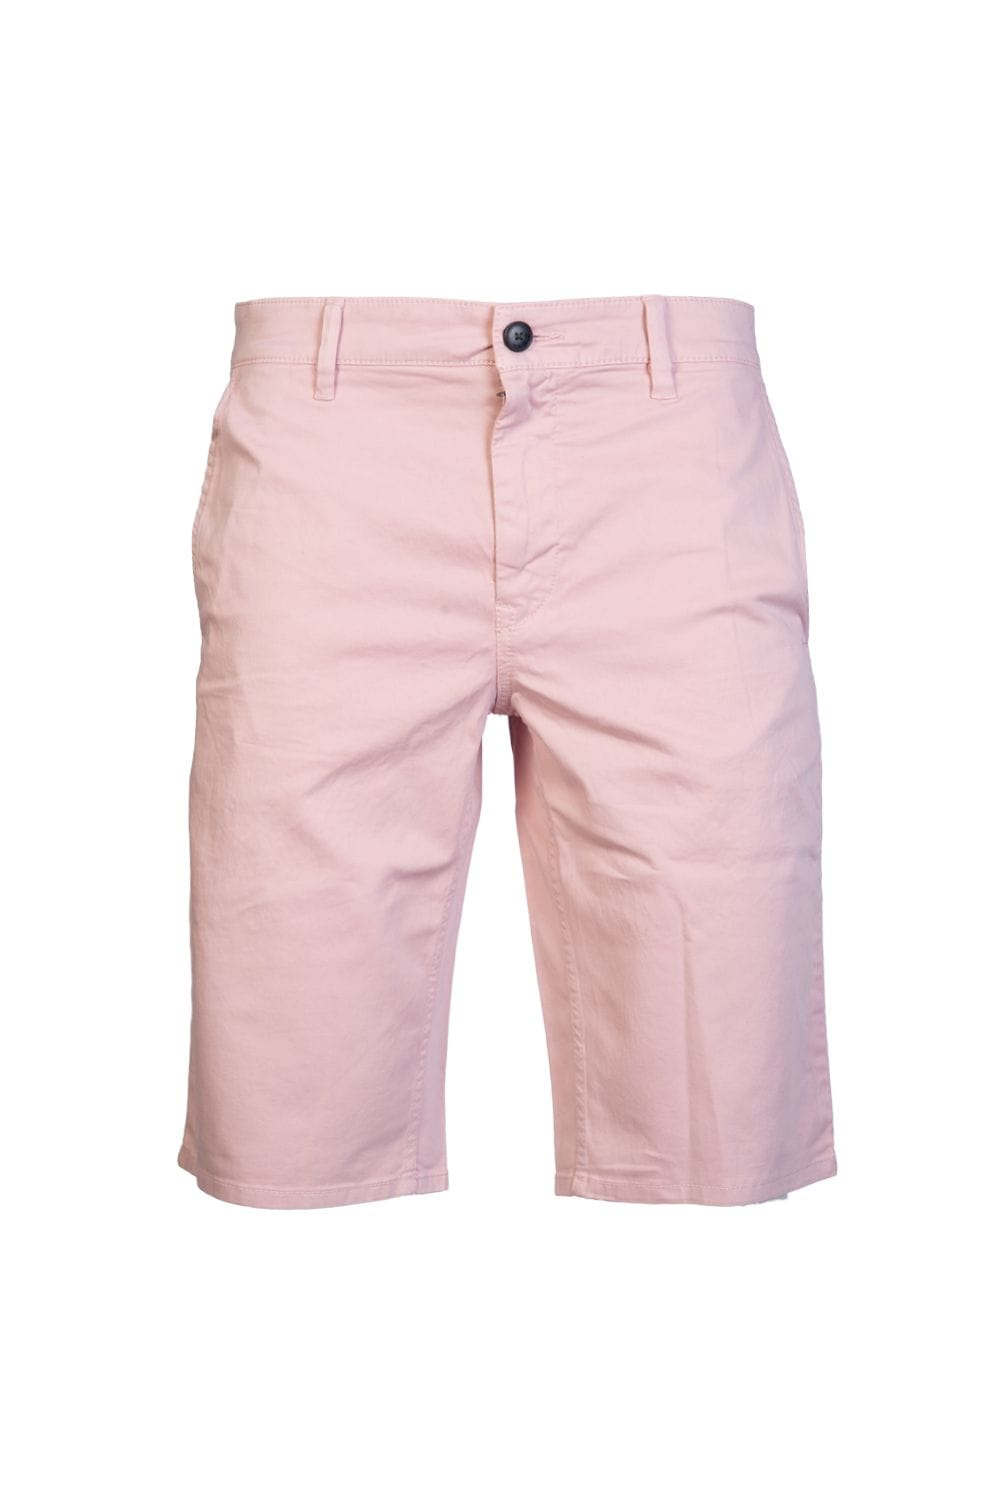 9875c897 BOSS Chino Shorts model